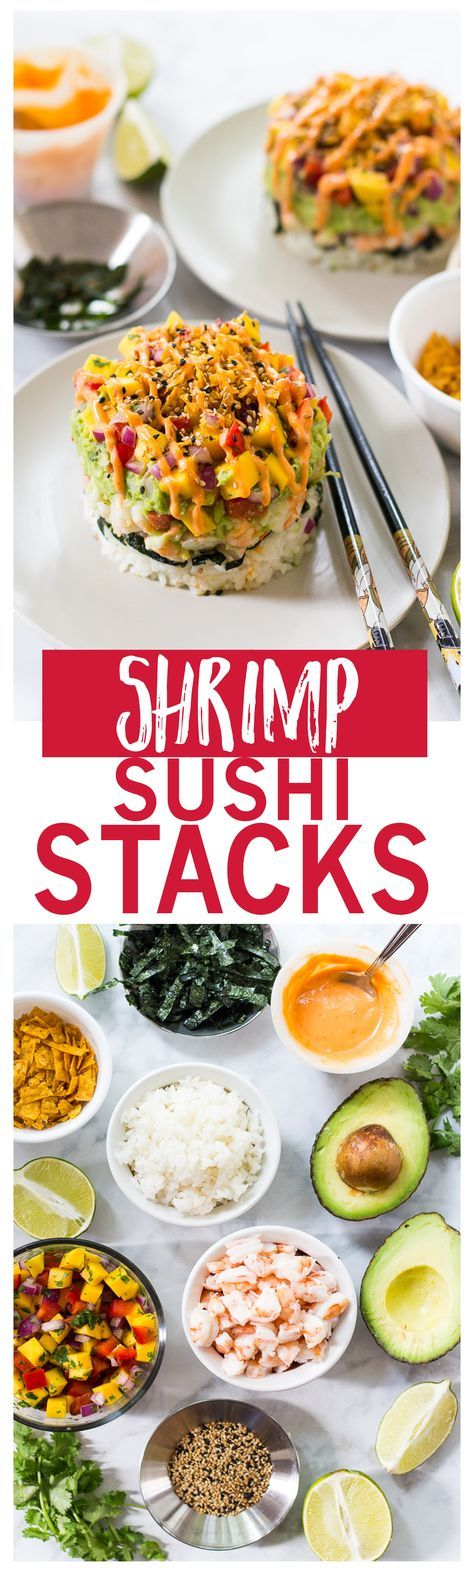 Spicy Shrimp Sushi Stacks | Like a deconstructed California roll!